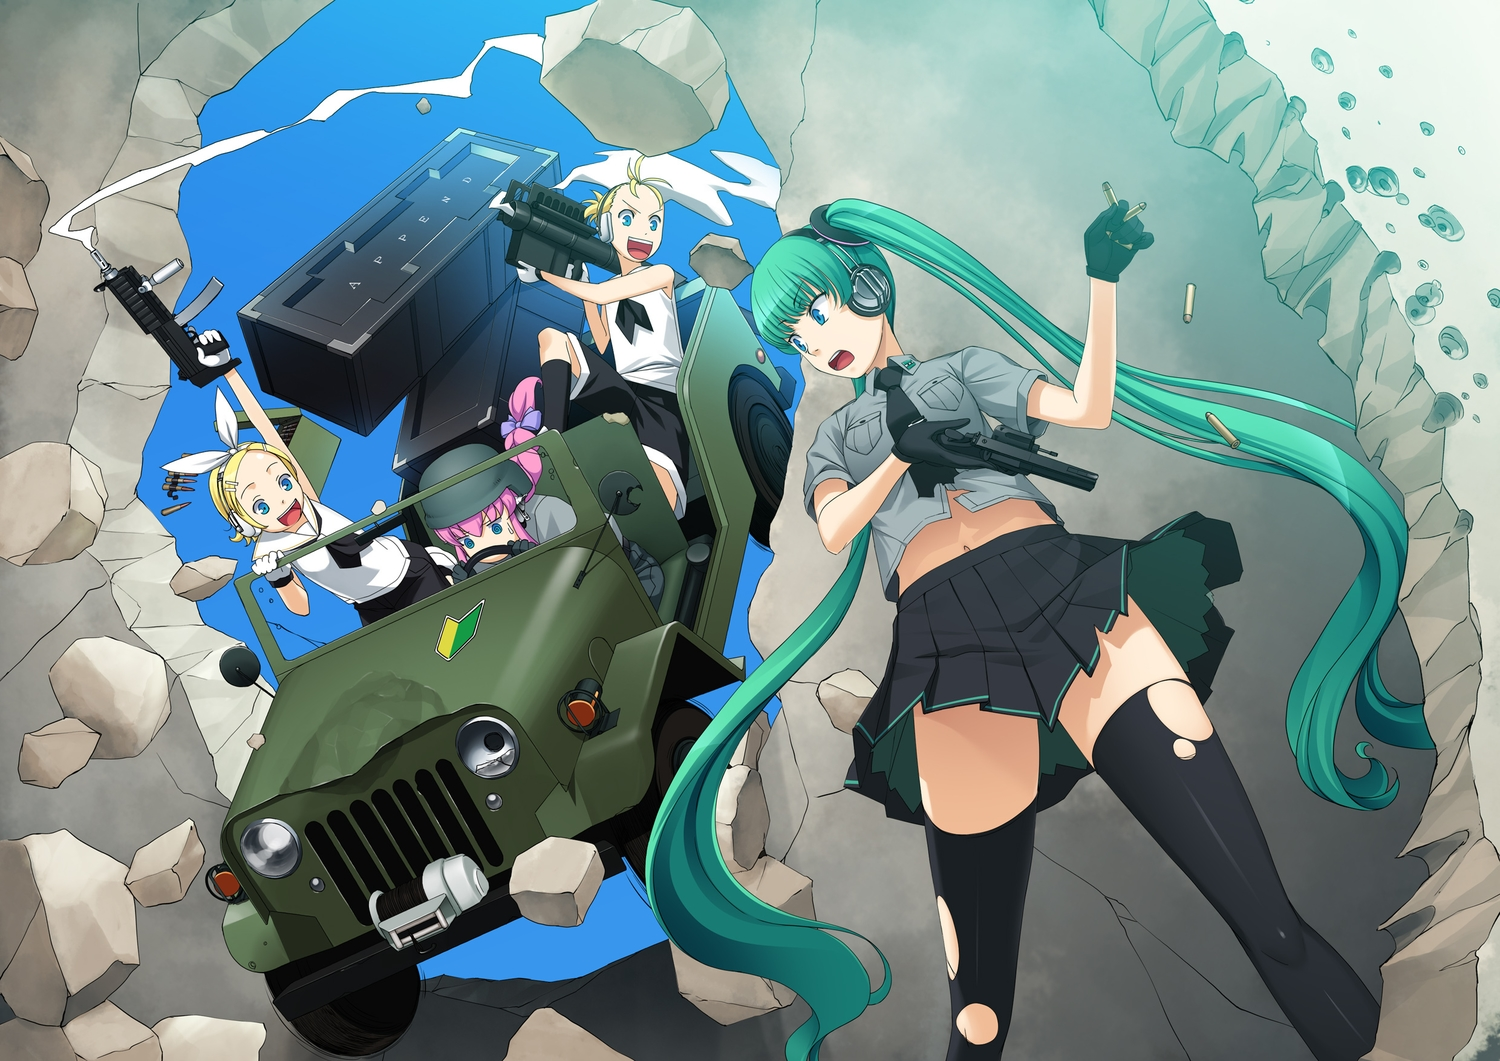 car combat_vehicle gahaku group gun hatsune_miku kagamine_len kagamine_rin male megurine_luka thighhighs torn_clothes vocaloid weapon